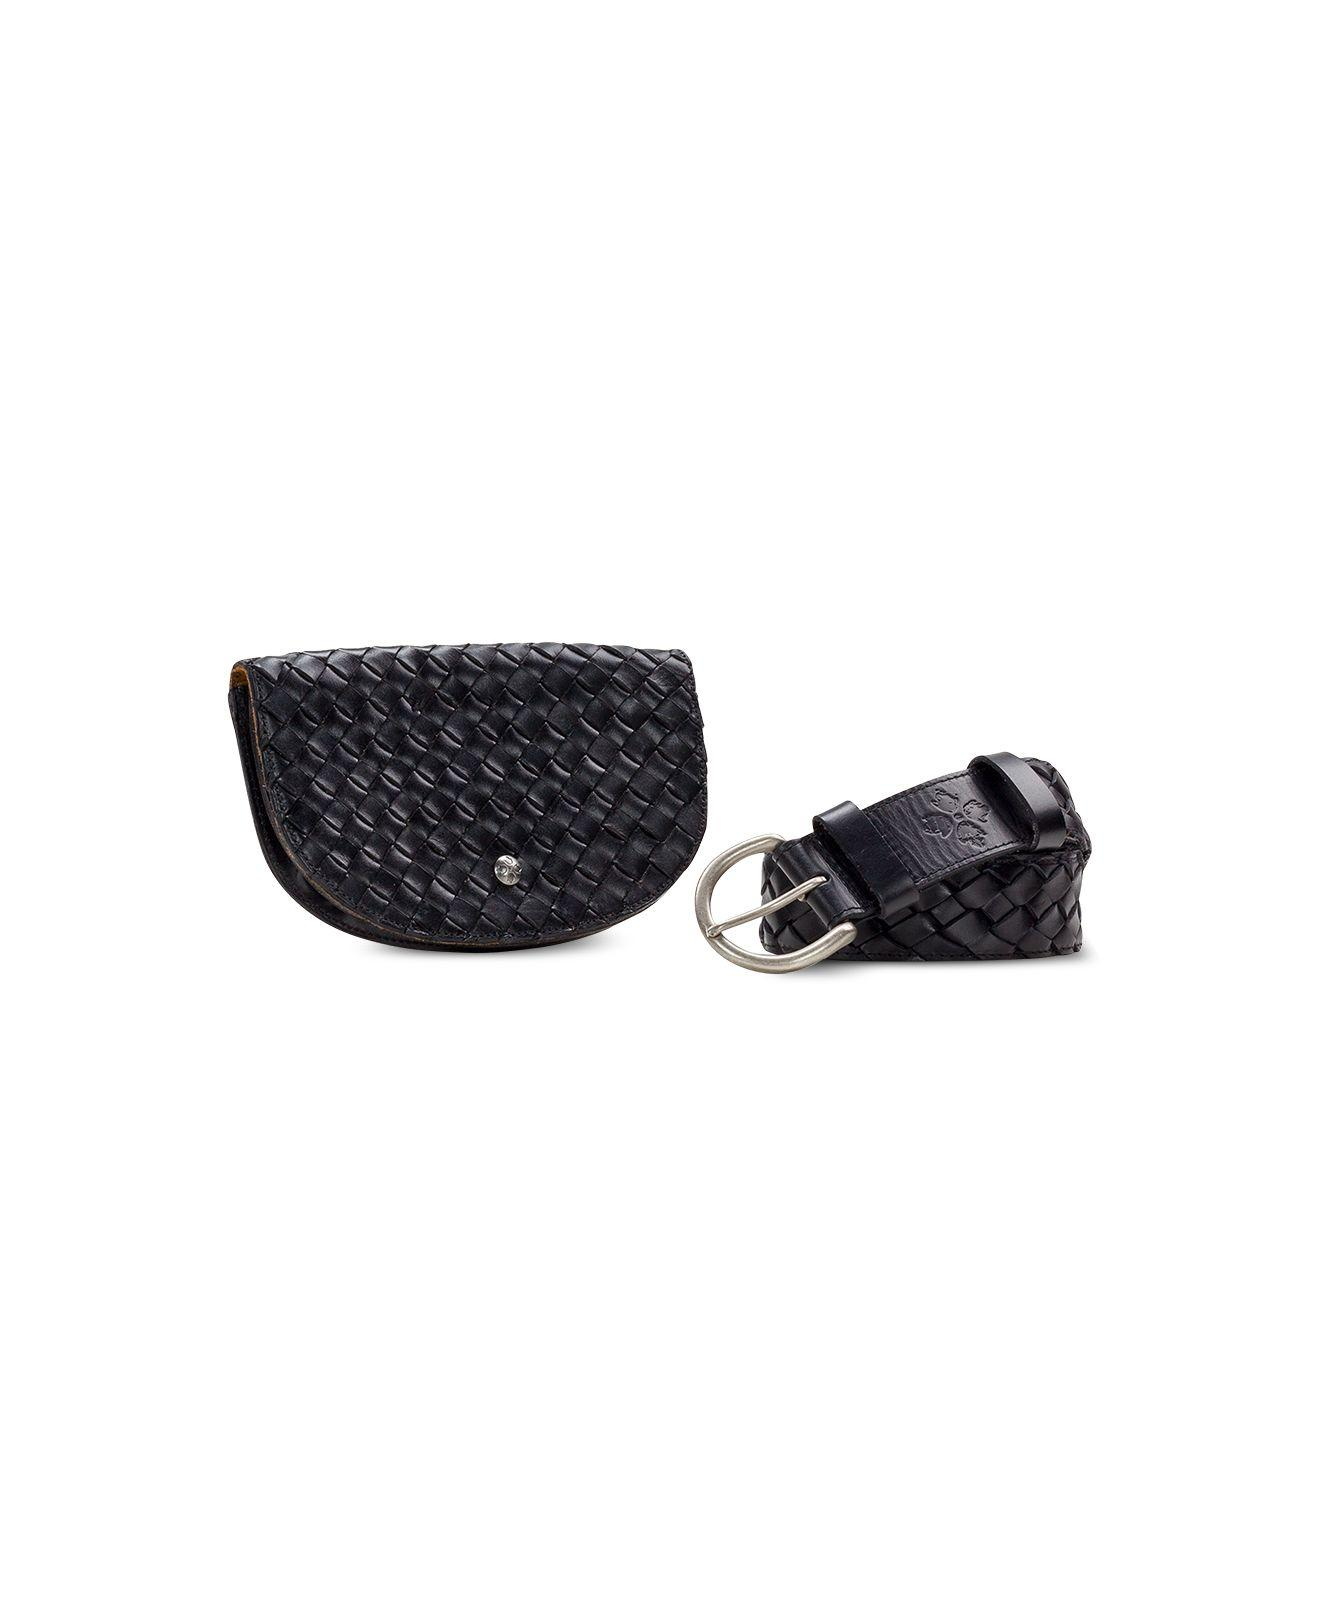 9af0f6bad Patricia Nash Woven Detachable Pouch Belt Bag in Black - Save 40% - Lyst